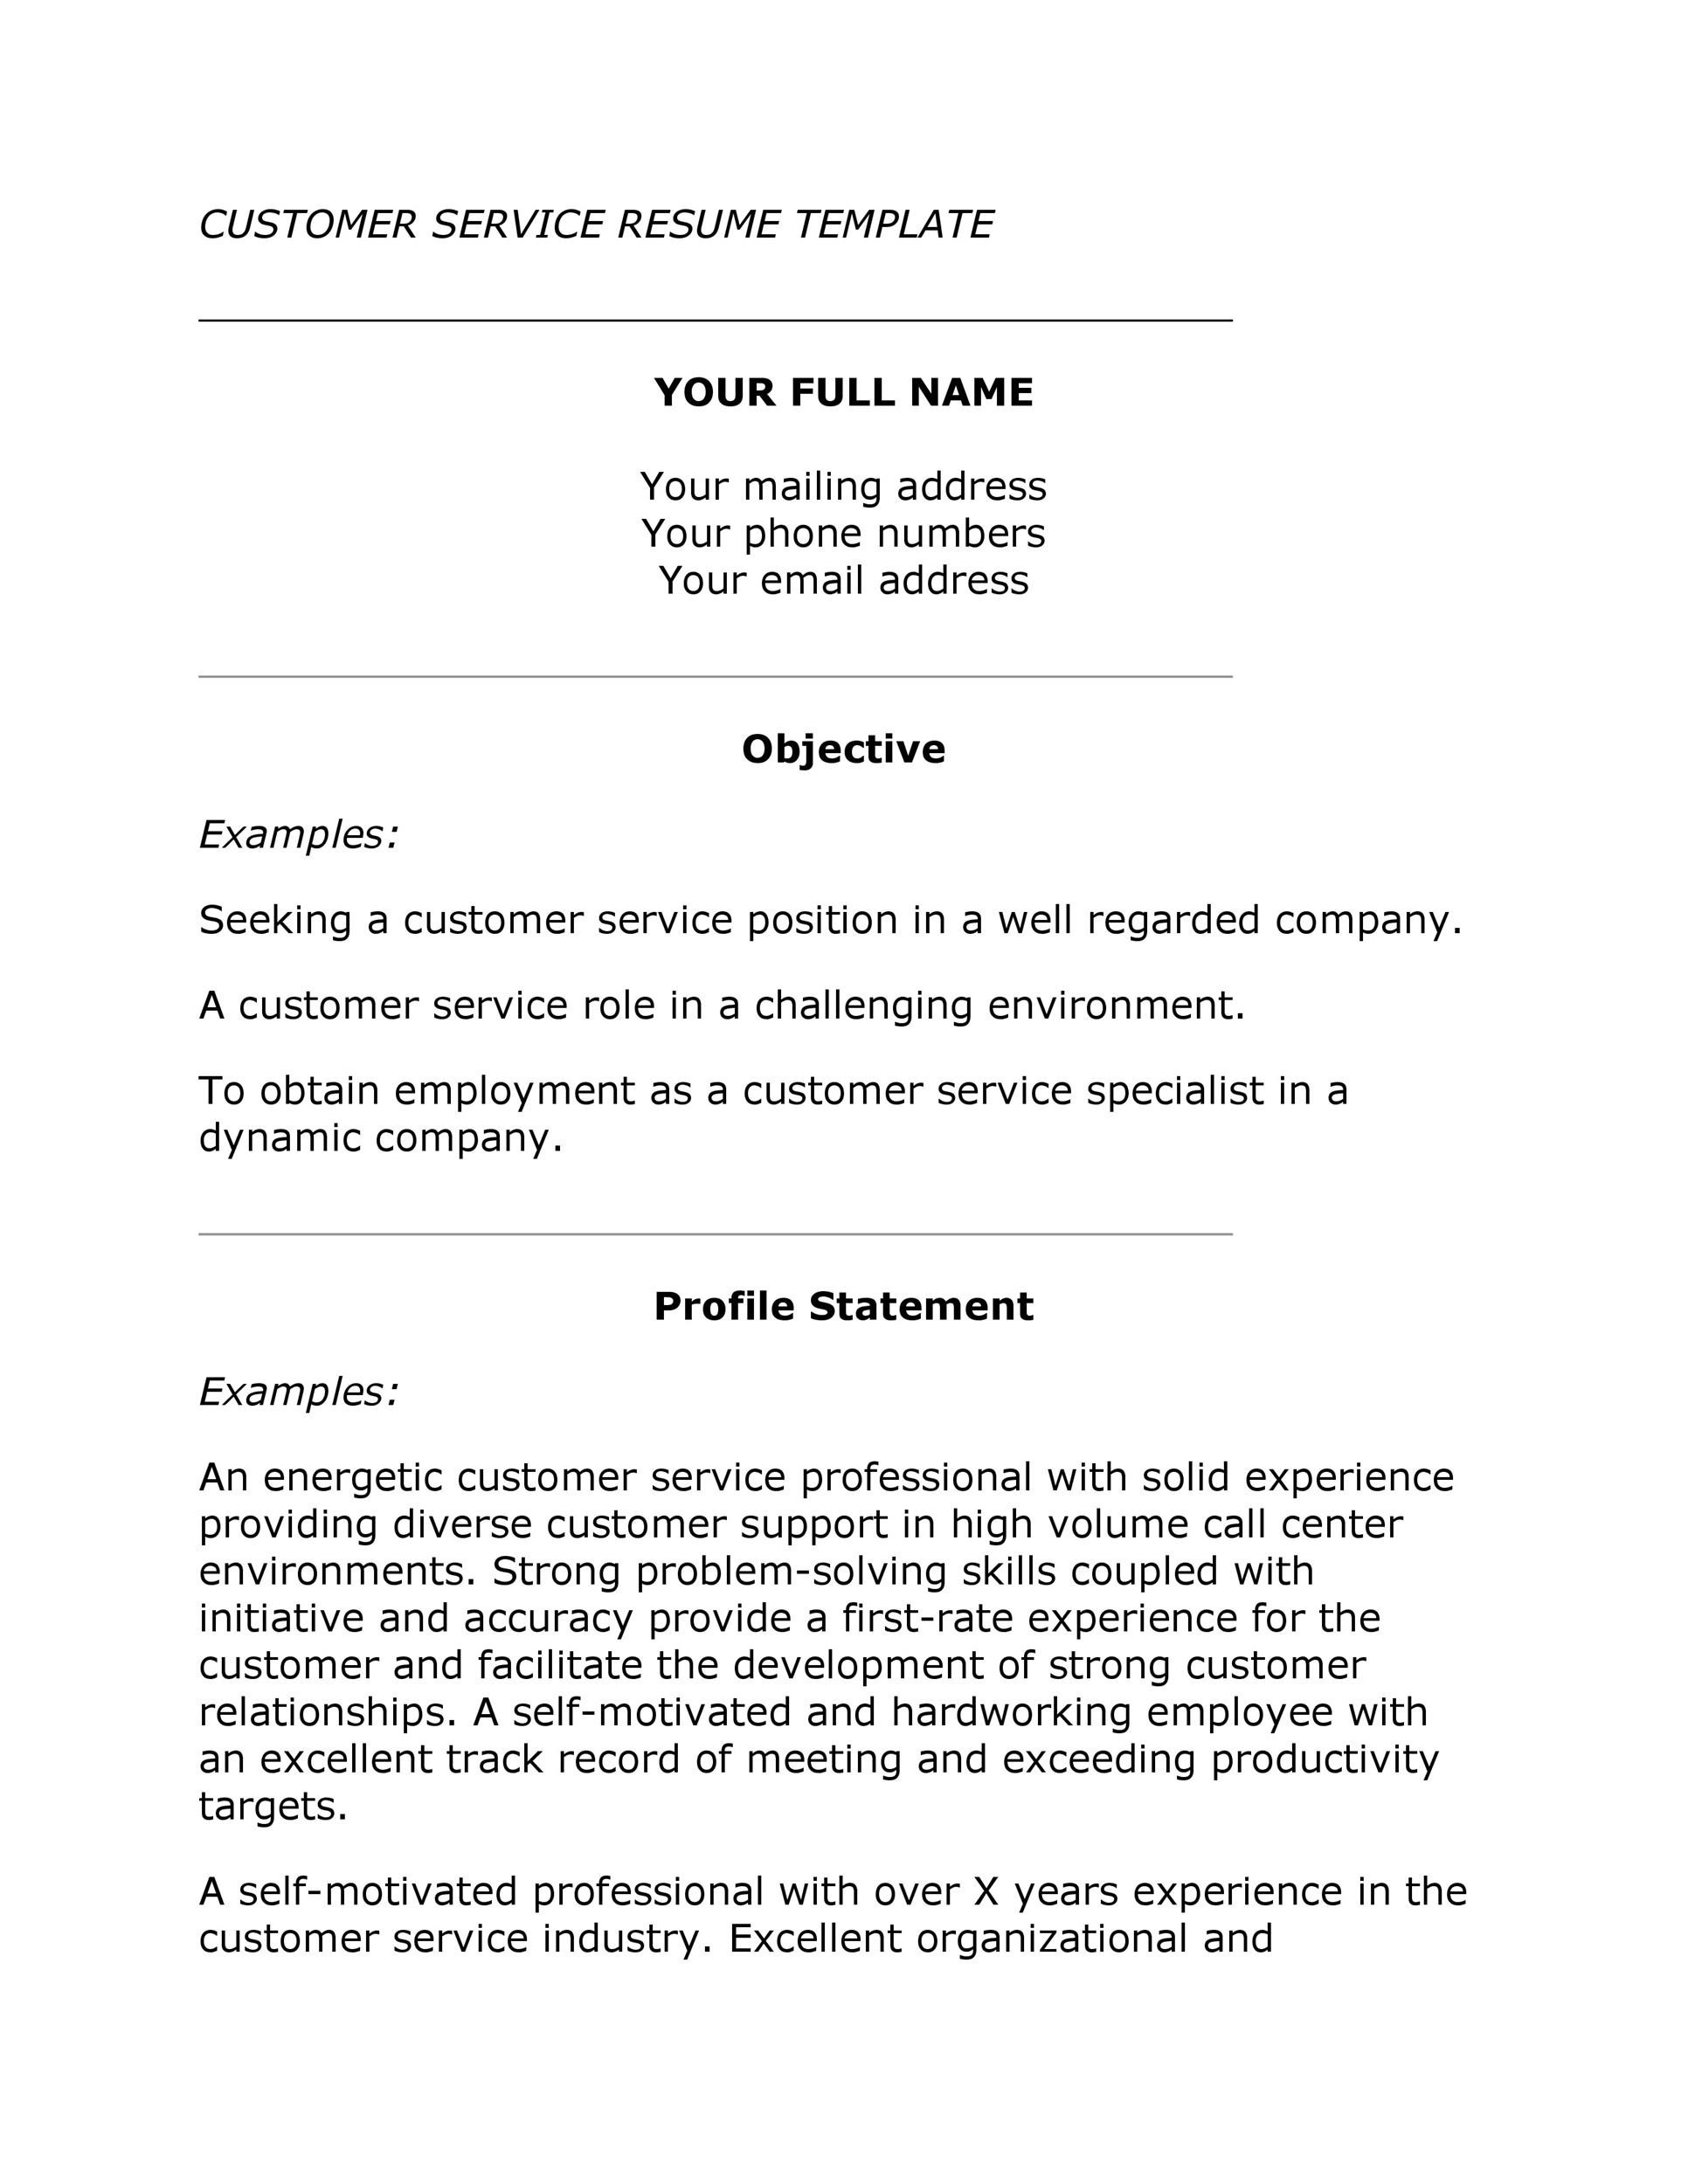 Customer Service Resume Template 06